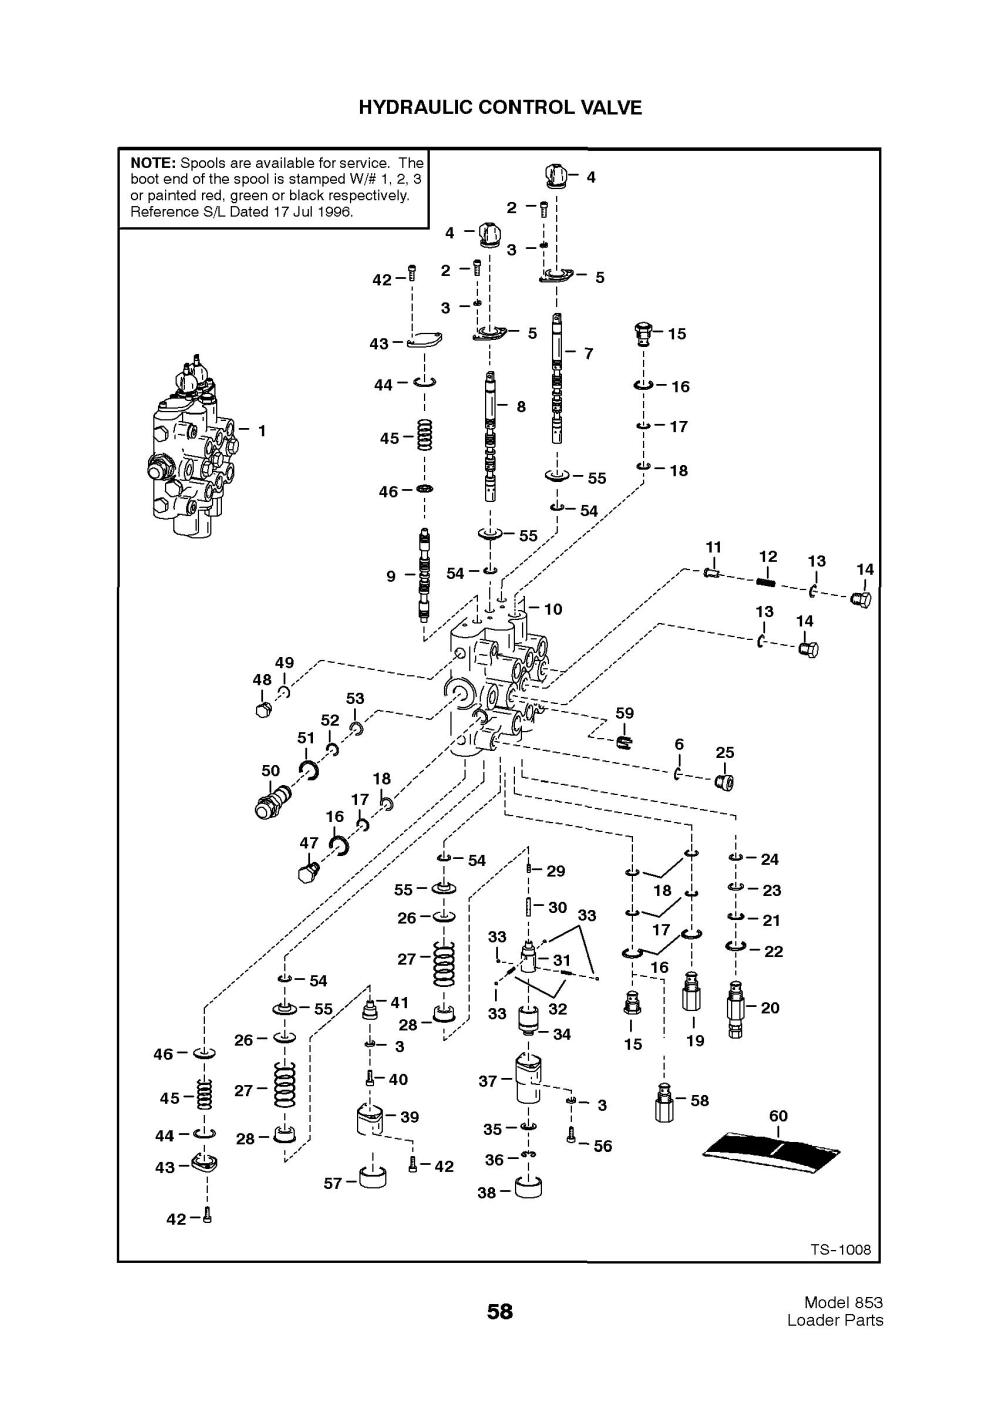 hight resolution of  medium resolution of 763 bobcat hydraulic schematic wiring diagram third level bobcat 753 hydraulic diagram bobcat